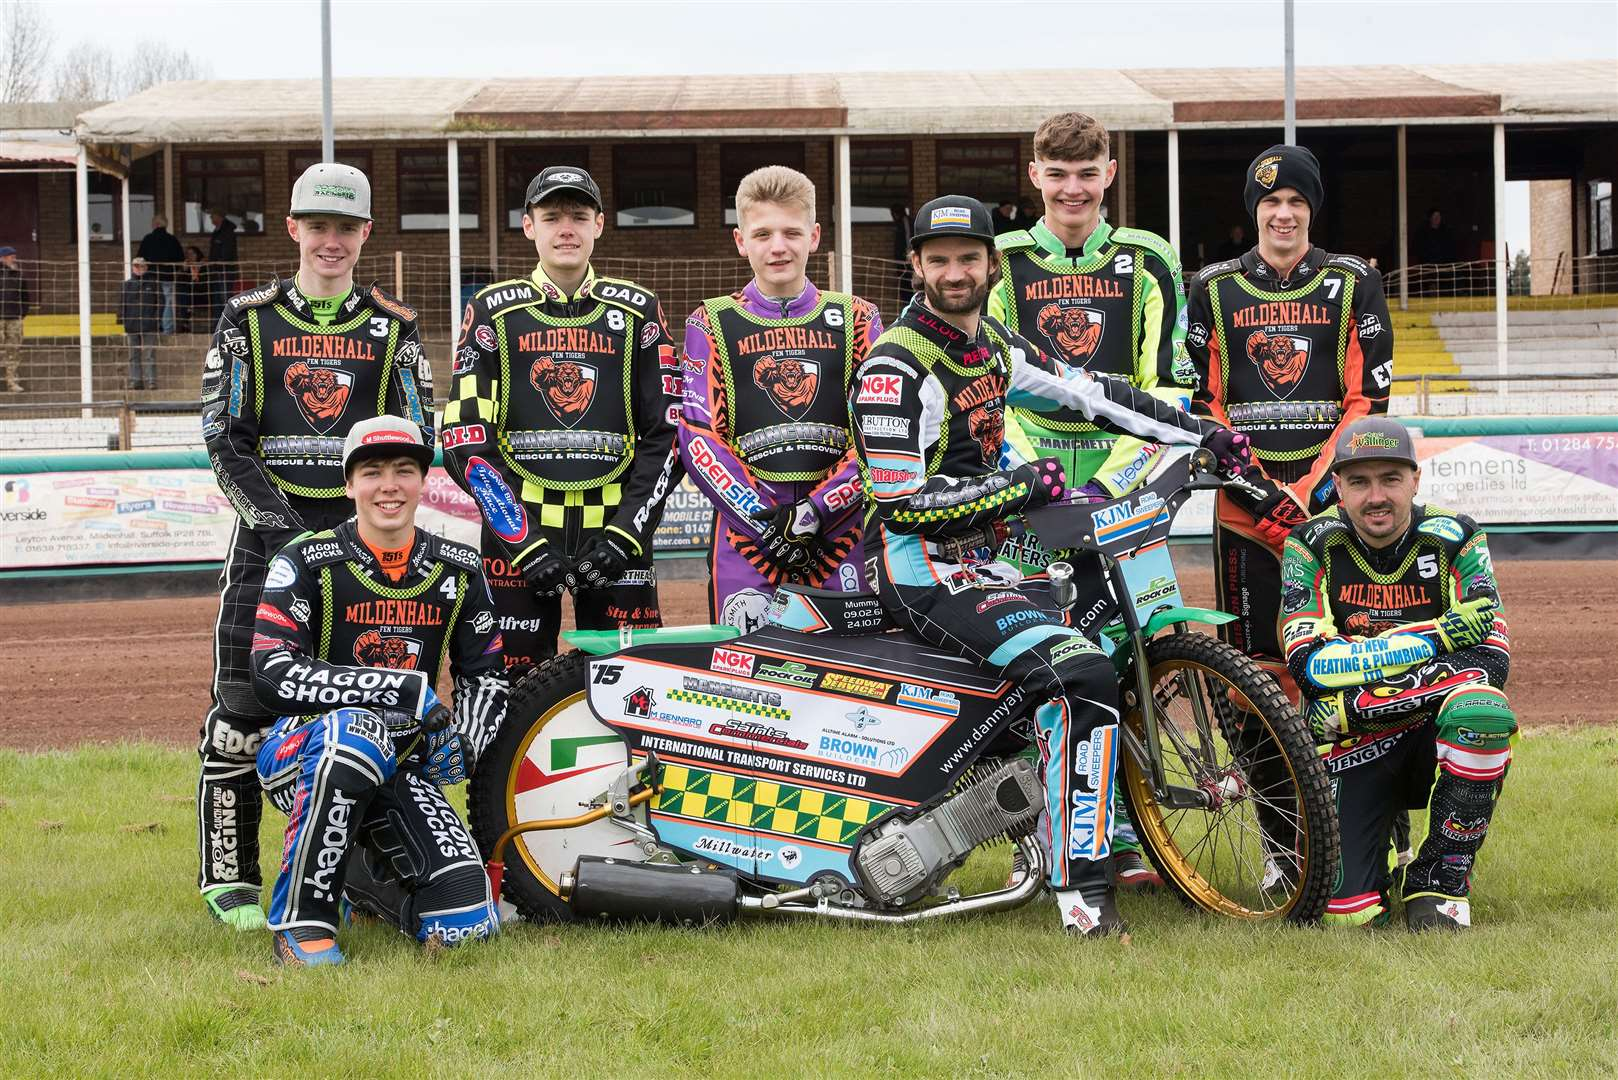 Mildenhall Fen Tigers Press and Practice Day Fen Tigers team 2019 Danny Ayres, Sam Bebee, Charlie Brooks, Jason Edwards, Dave Wallinger, Elliot Kelly, Macauley Leek and Sam Norris Picture by Mark Westley. (28356758)